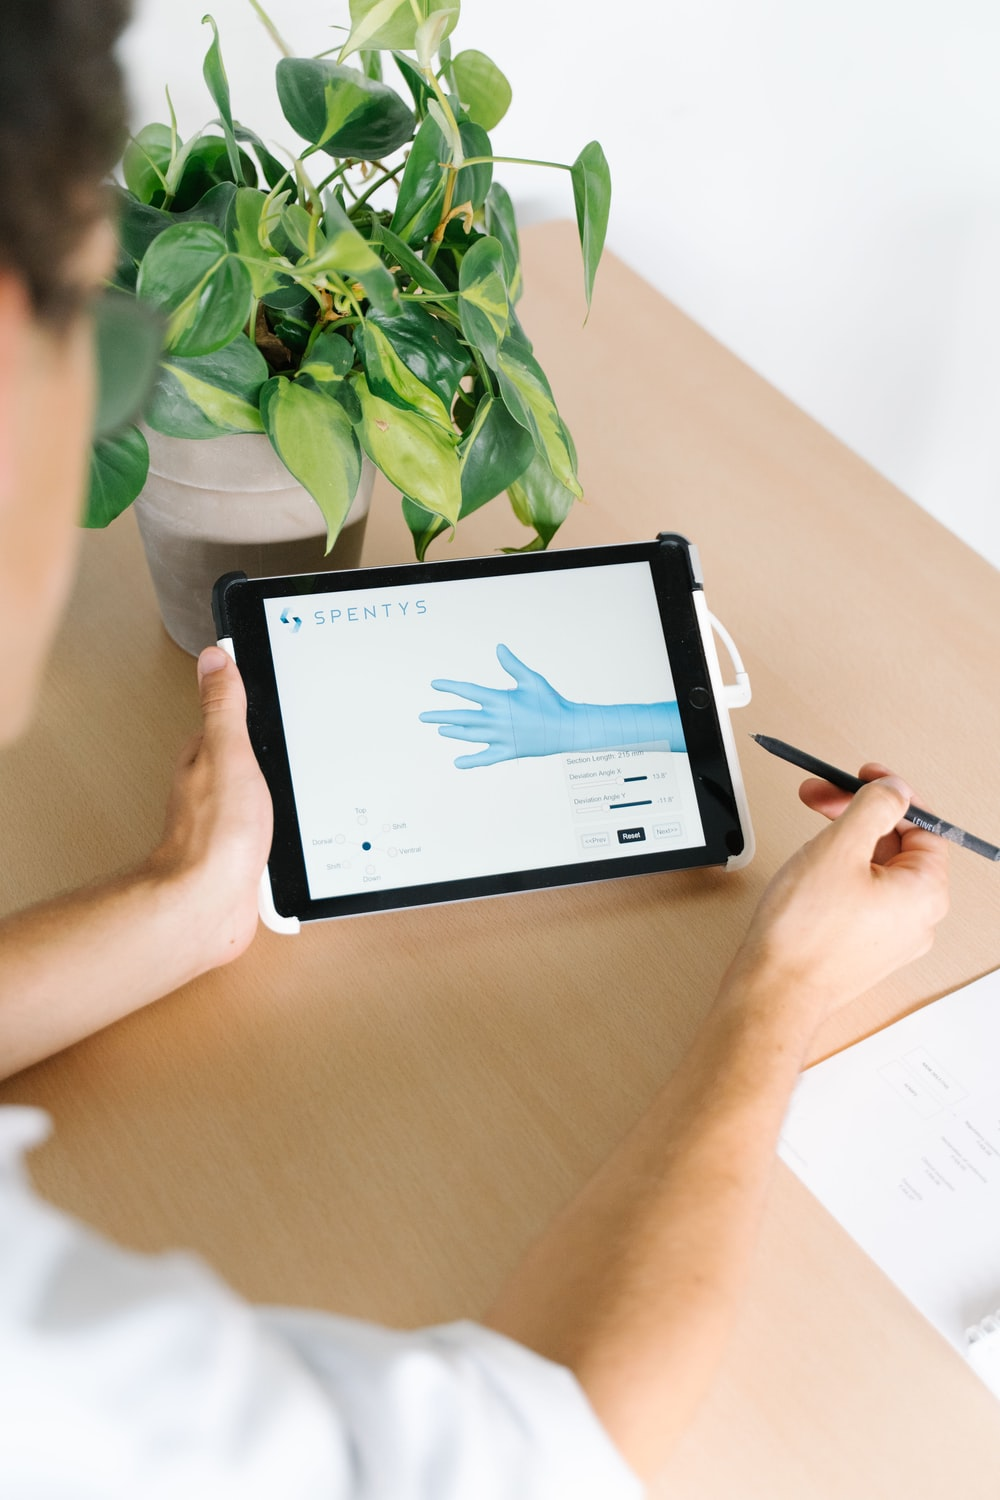 person holding black ipad on brown wooden table